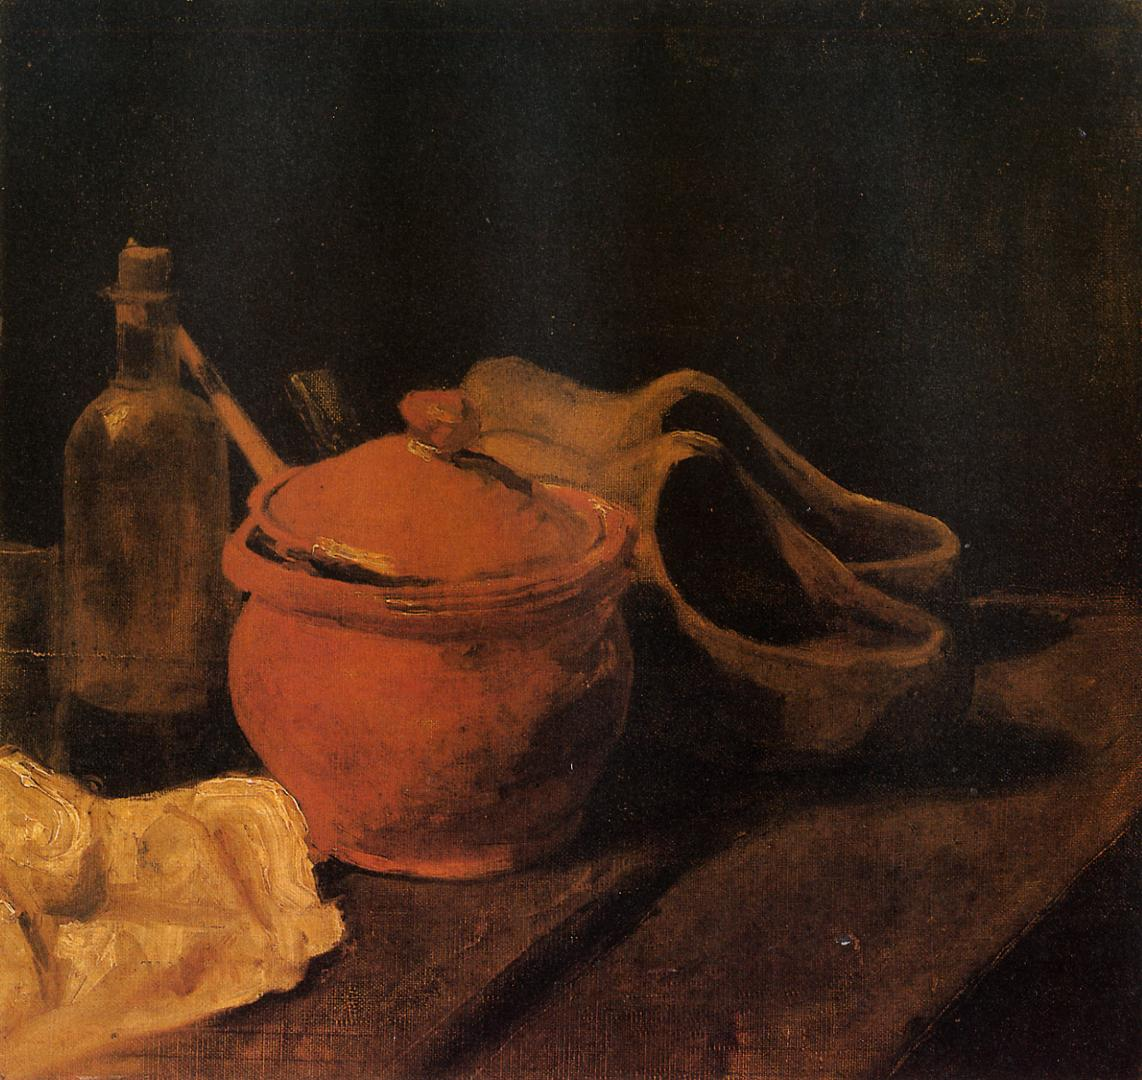 Still Life With Earthenware, Bottle, and Clogs by Vincent van Gogh